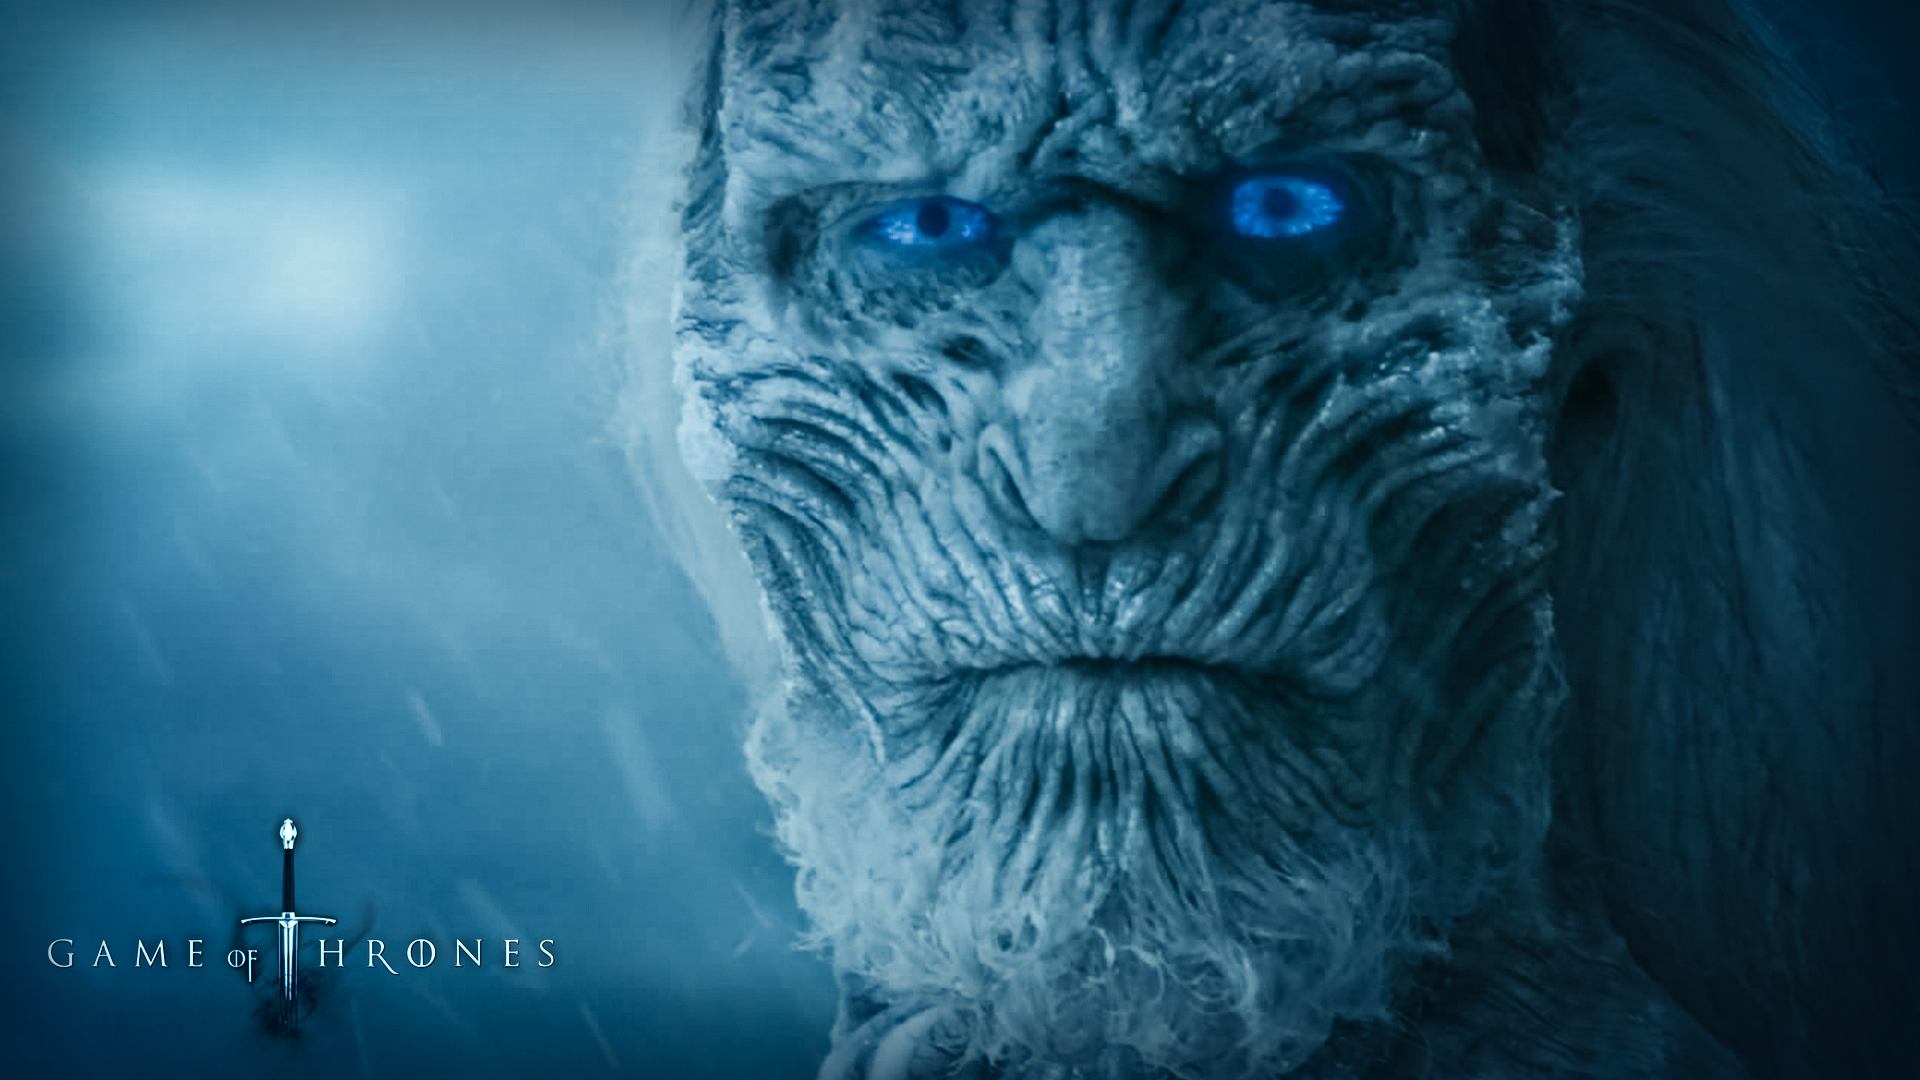 Game Of Thrones Wallpapers 4K 1920x1080 px   4USkY 1920x1080